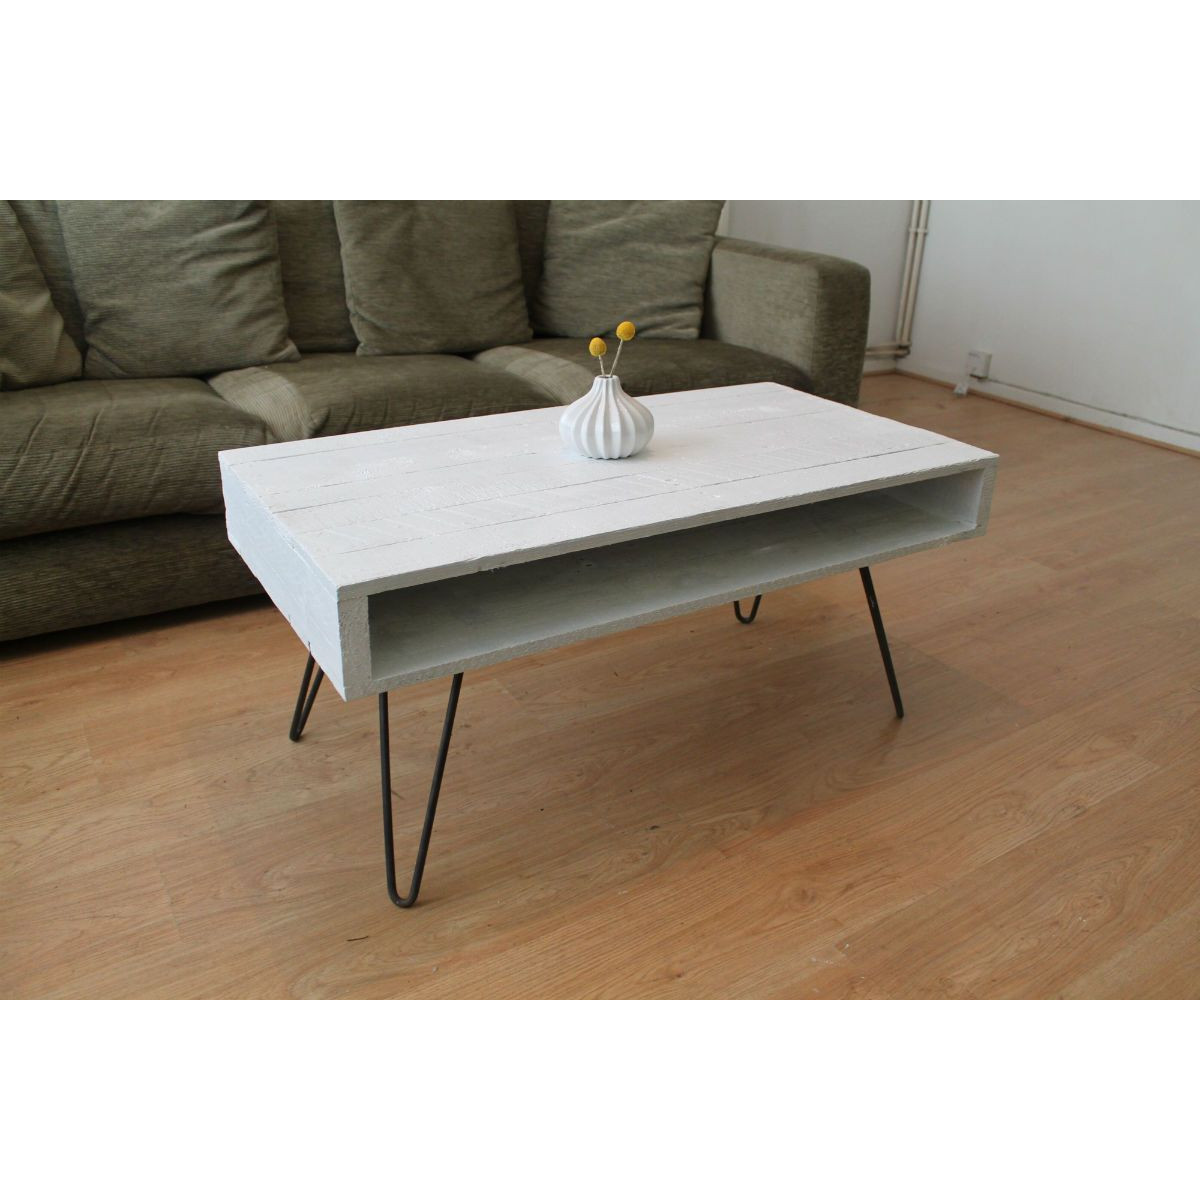 'Hairpin' White Coffee Table